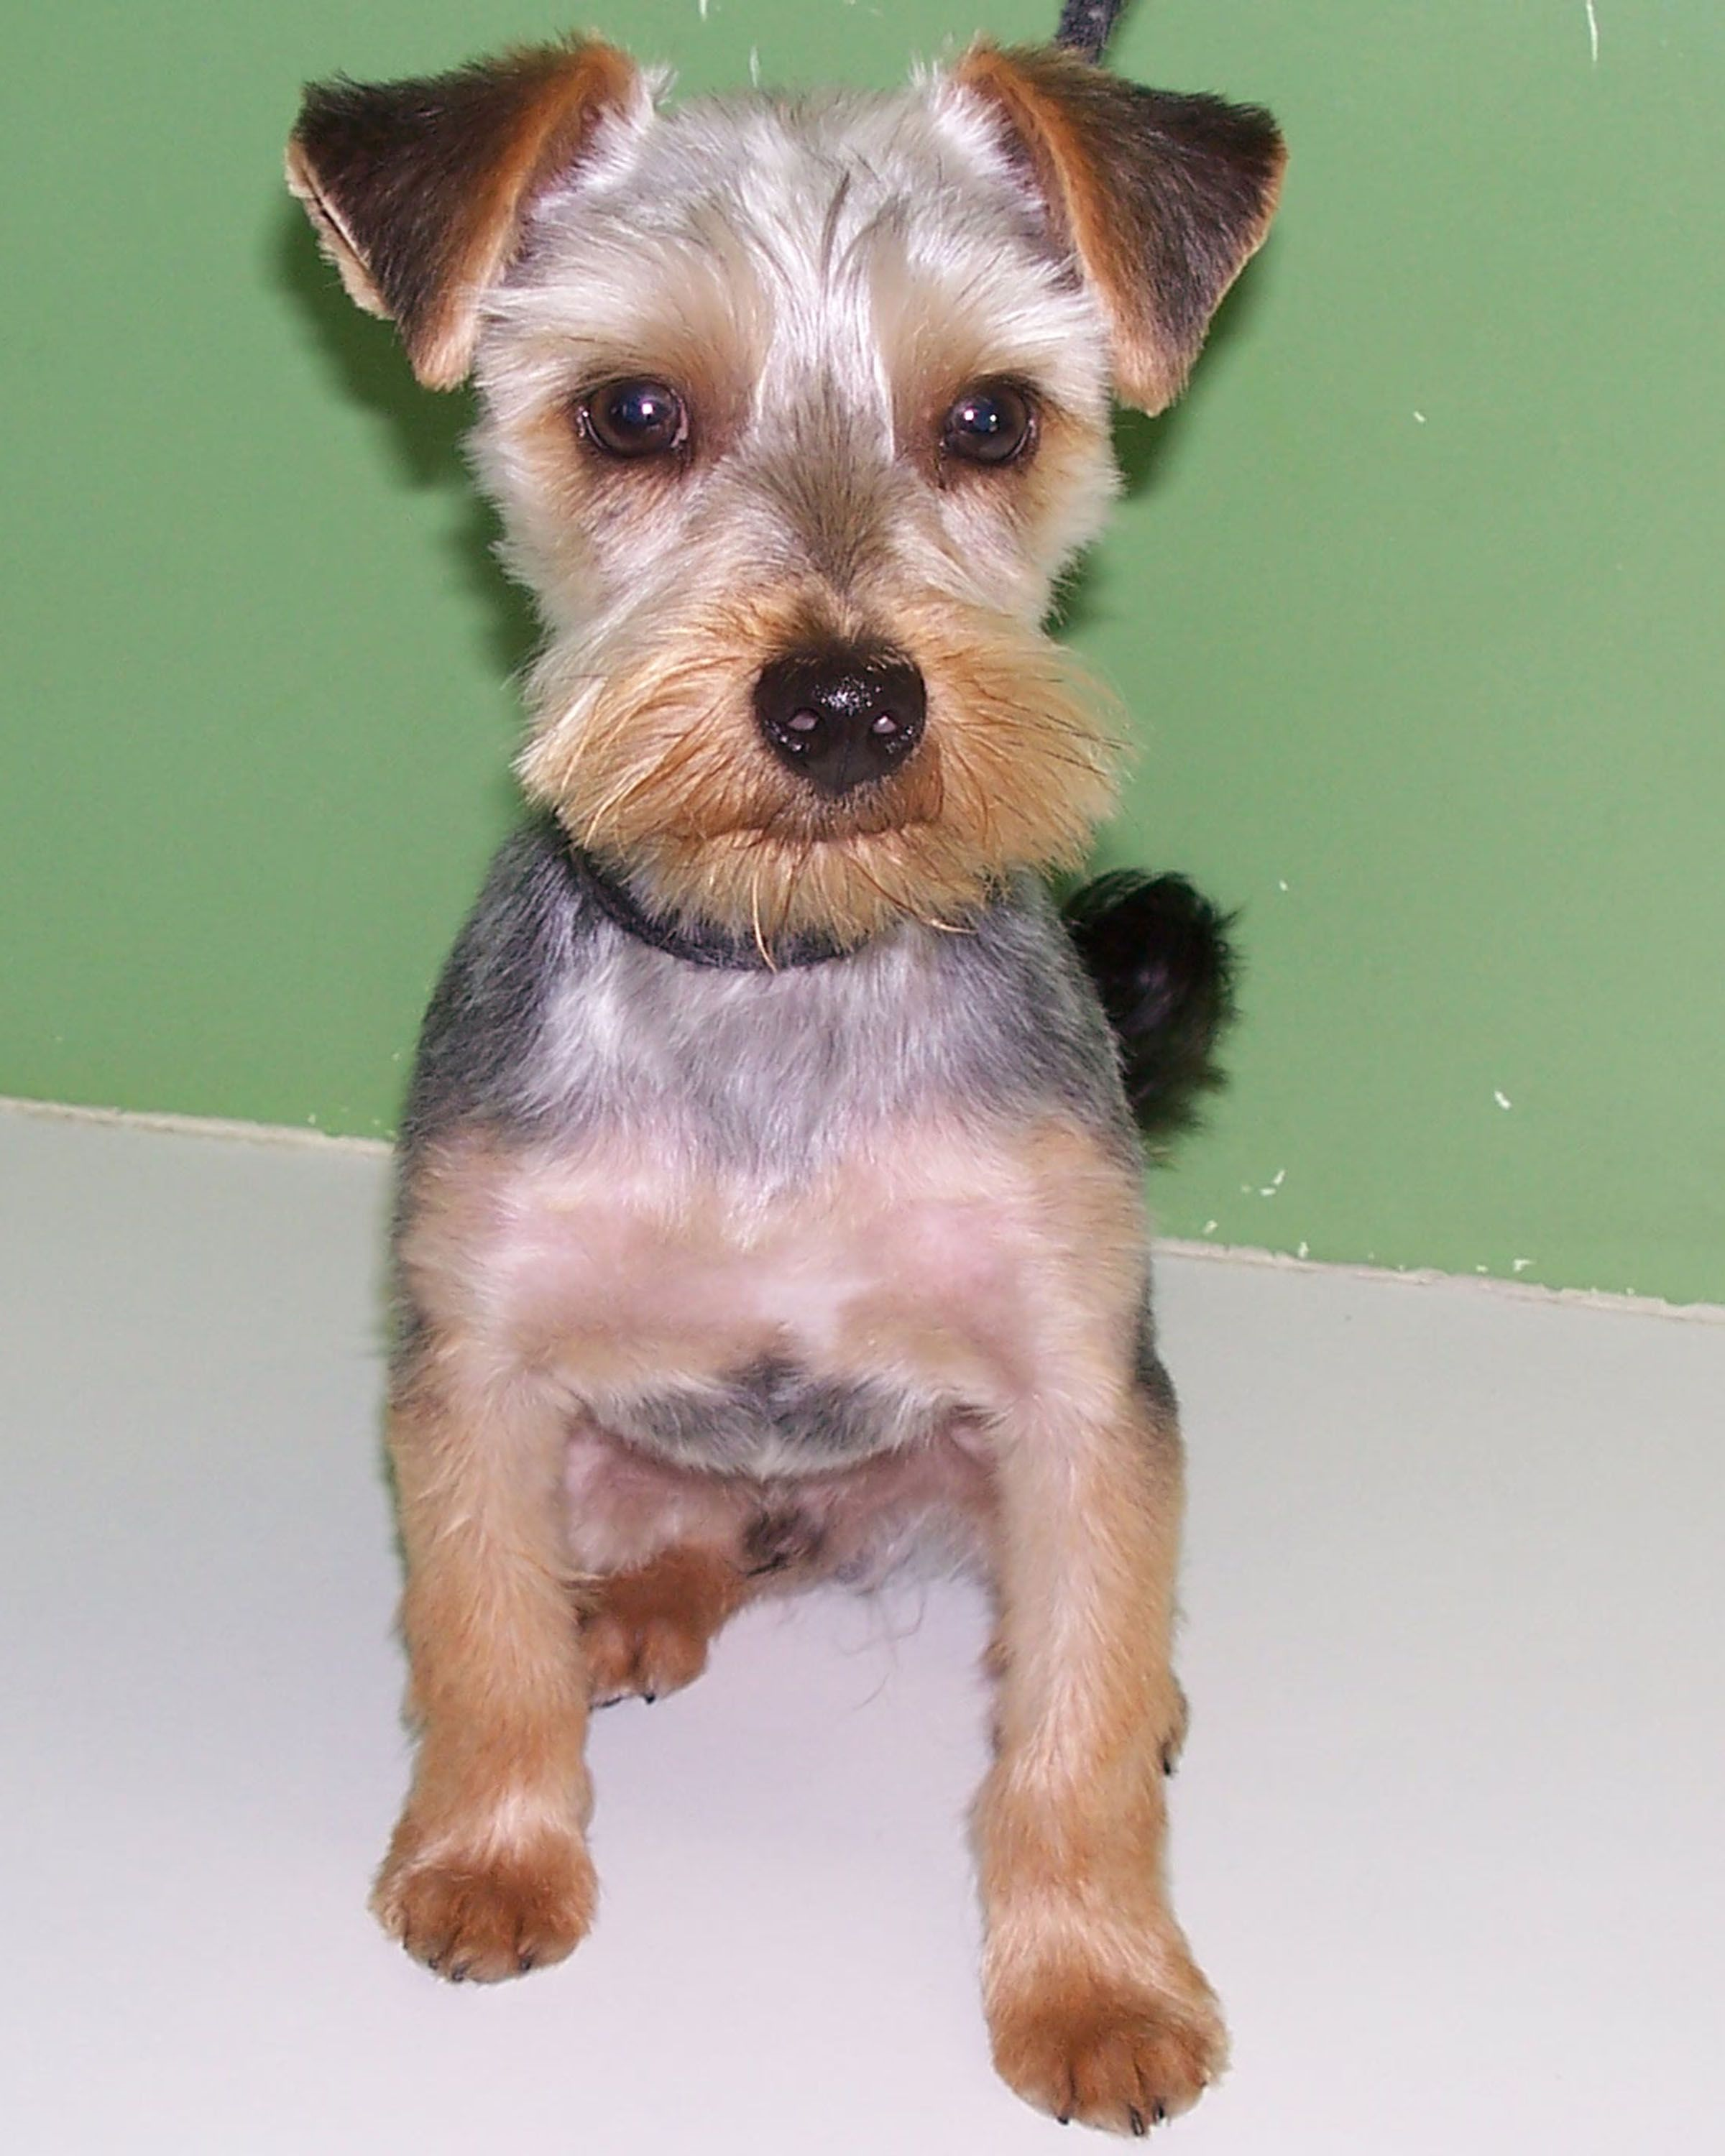 Terrier Haircuts : terrier, haircuts, Short, Yorkie, Terrier,, Yorkshire, Terrier, Puppies,